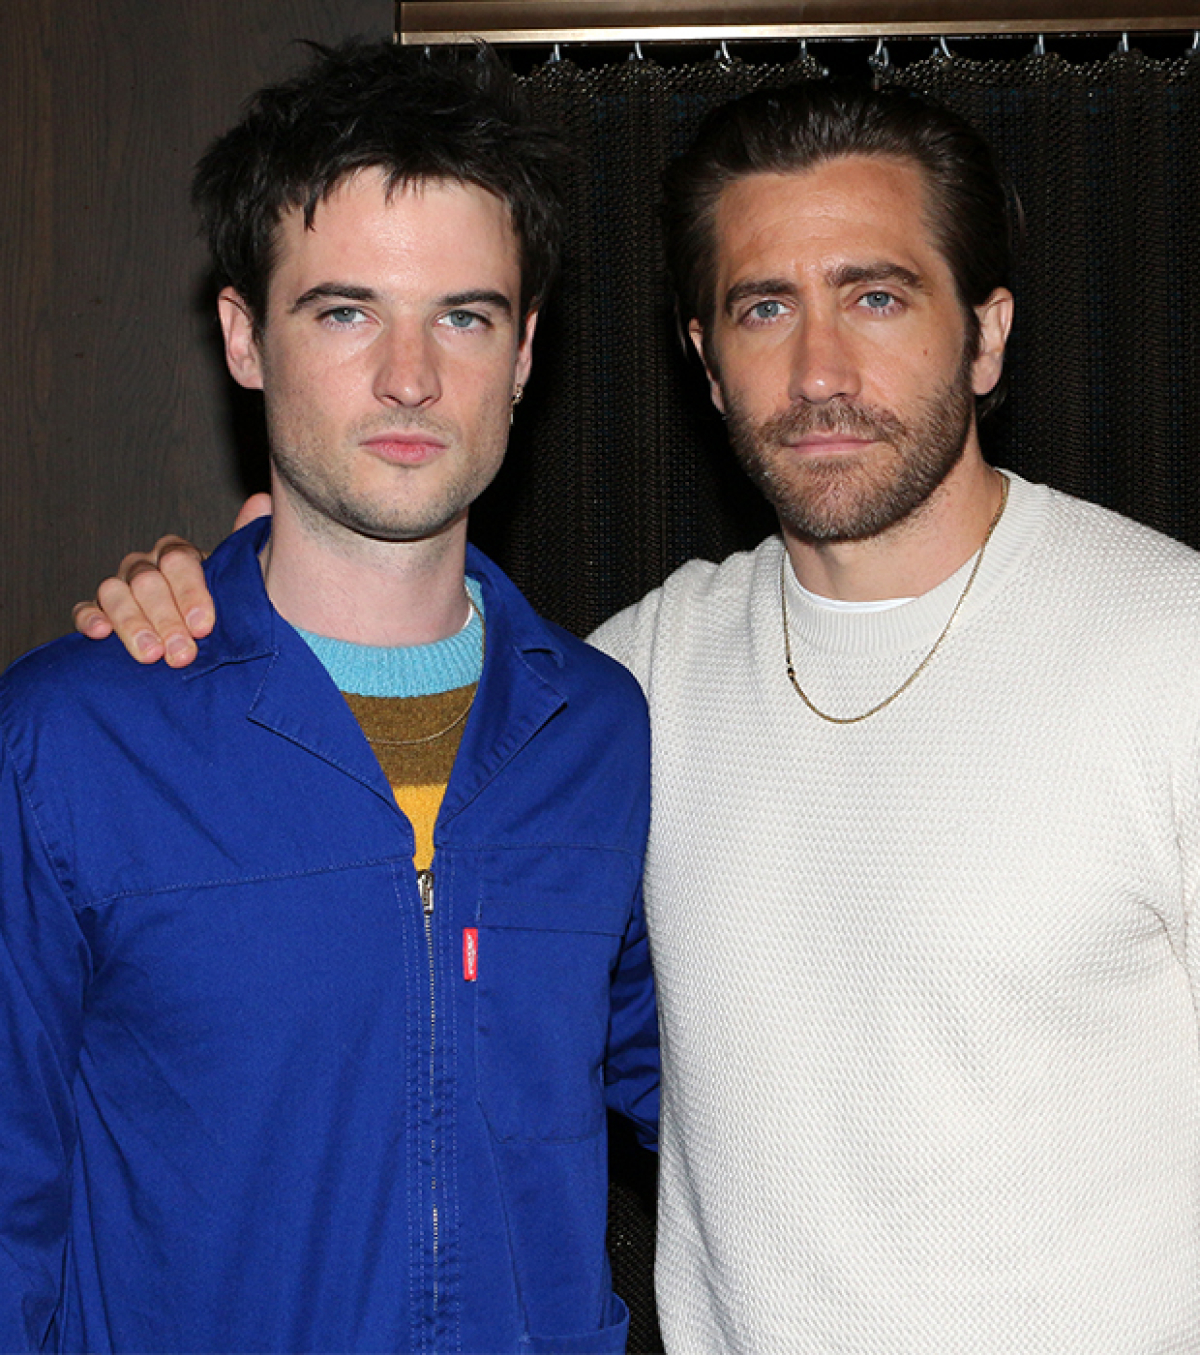 Jake Gyllenhaal and Tom Sturridge Really Want You to Know the Title of Their Broadway Show | TheaterMania